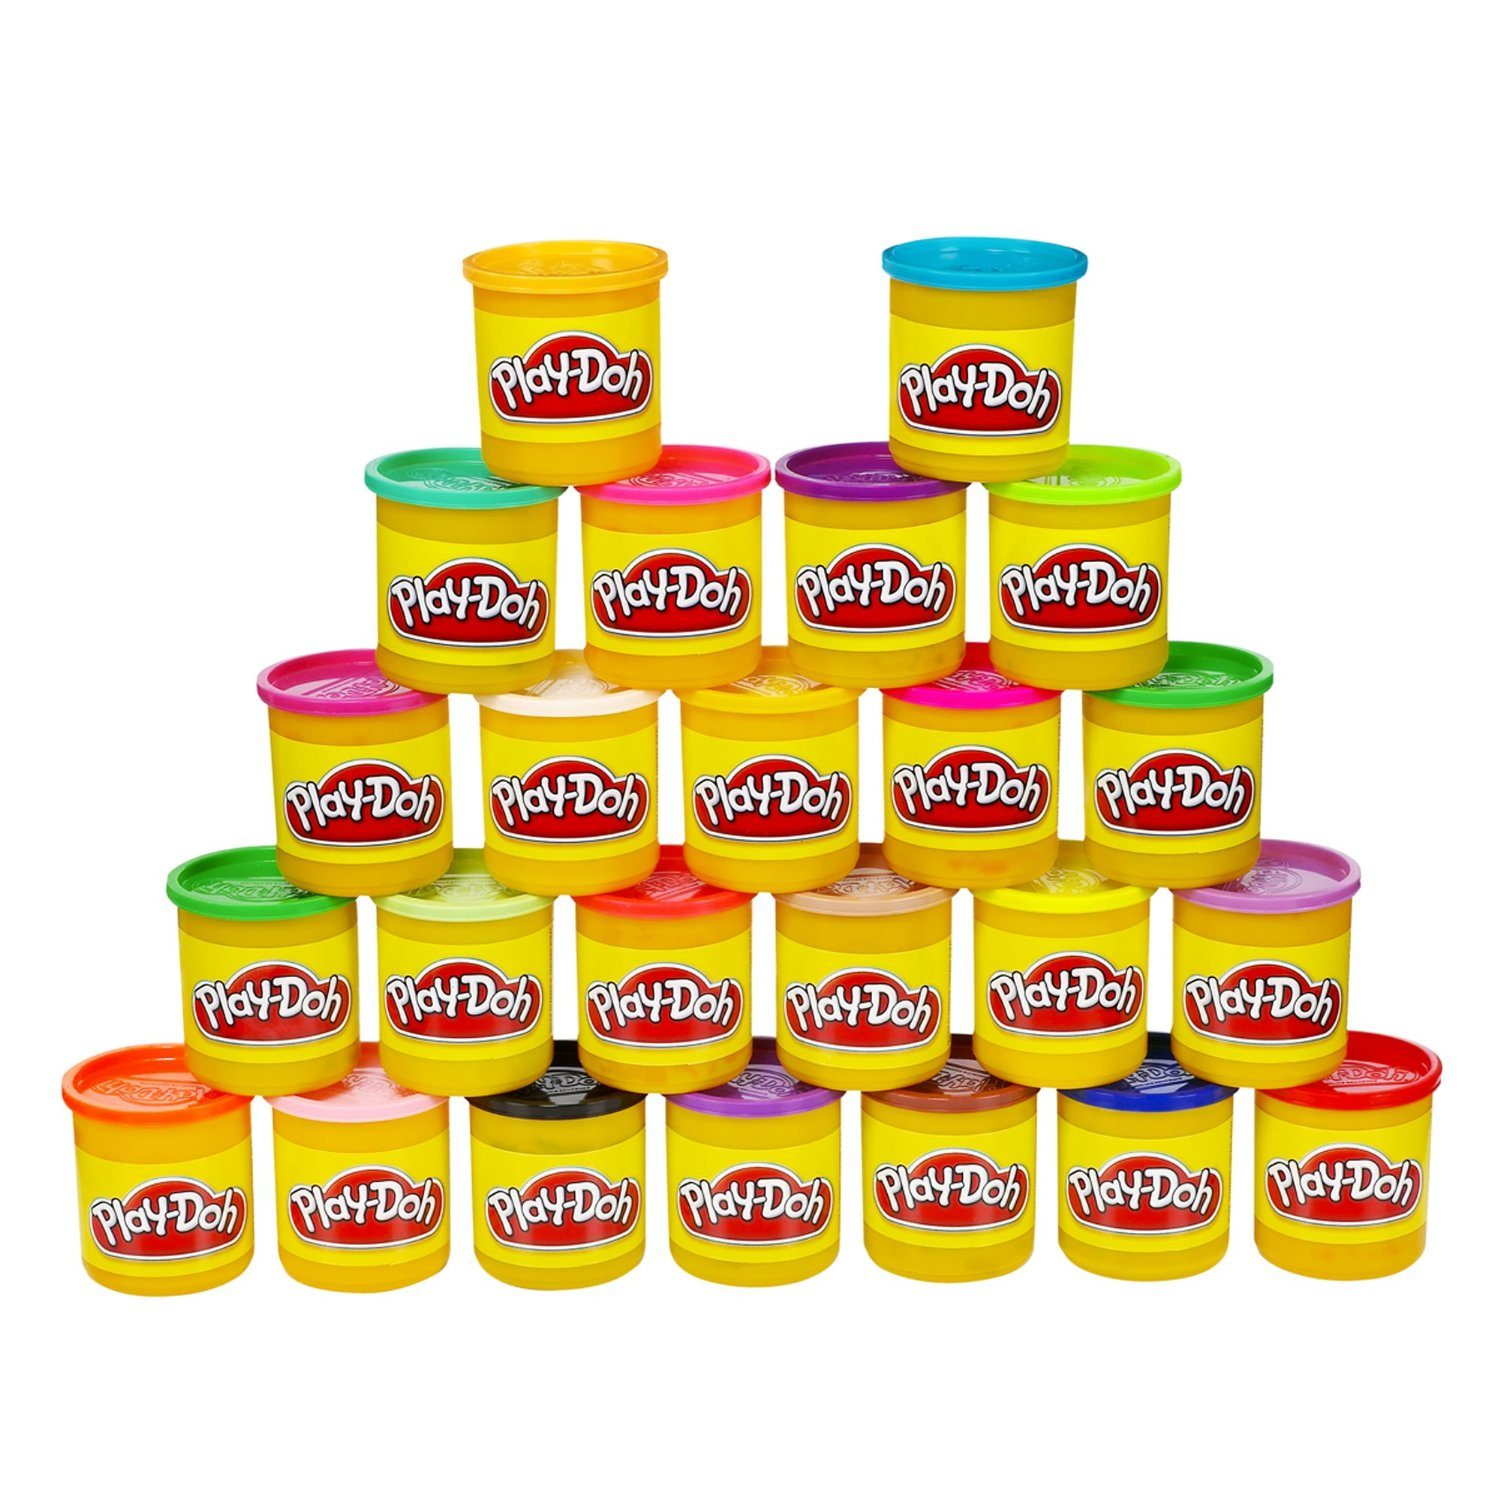 81tEFtVFzBL. SL1500  - Play-Doh 24-Pack of Colors (Frustration Free Packaging)